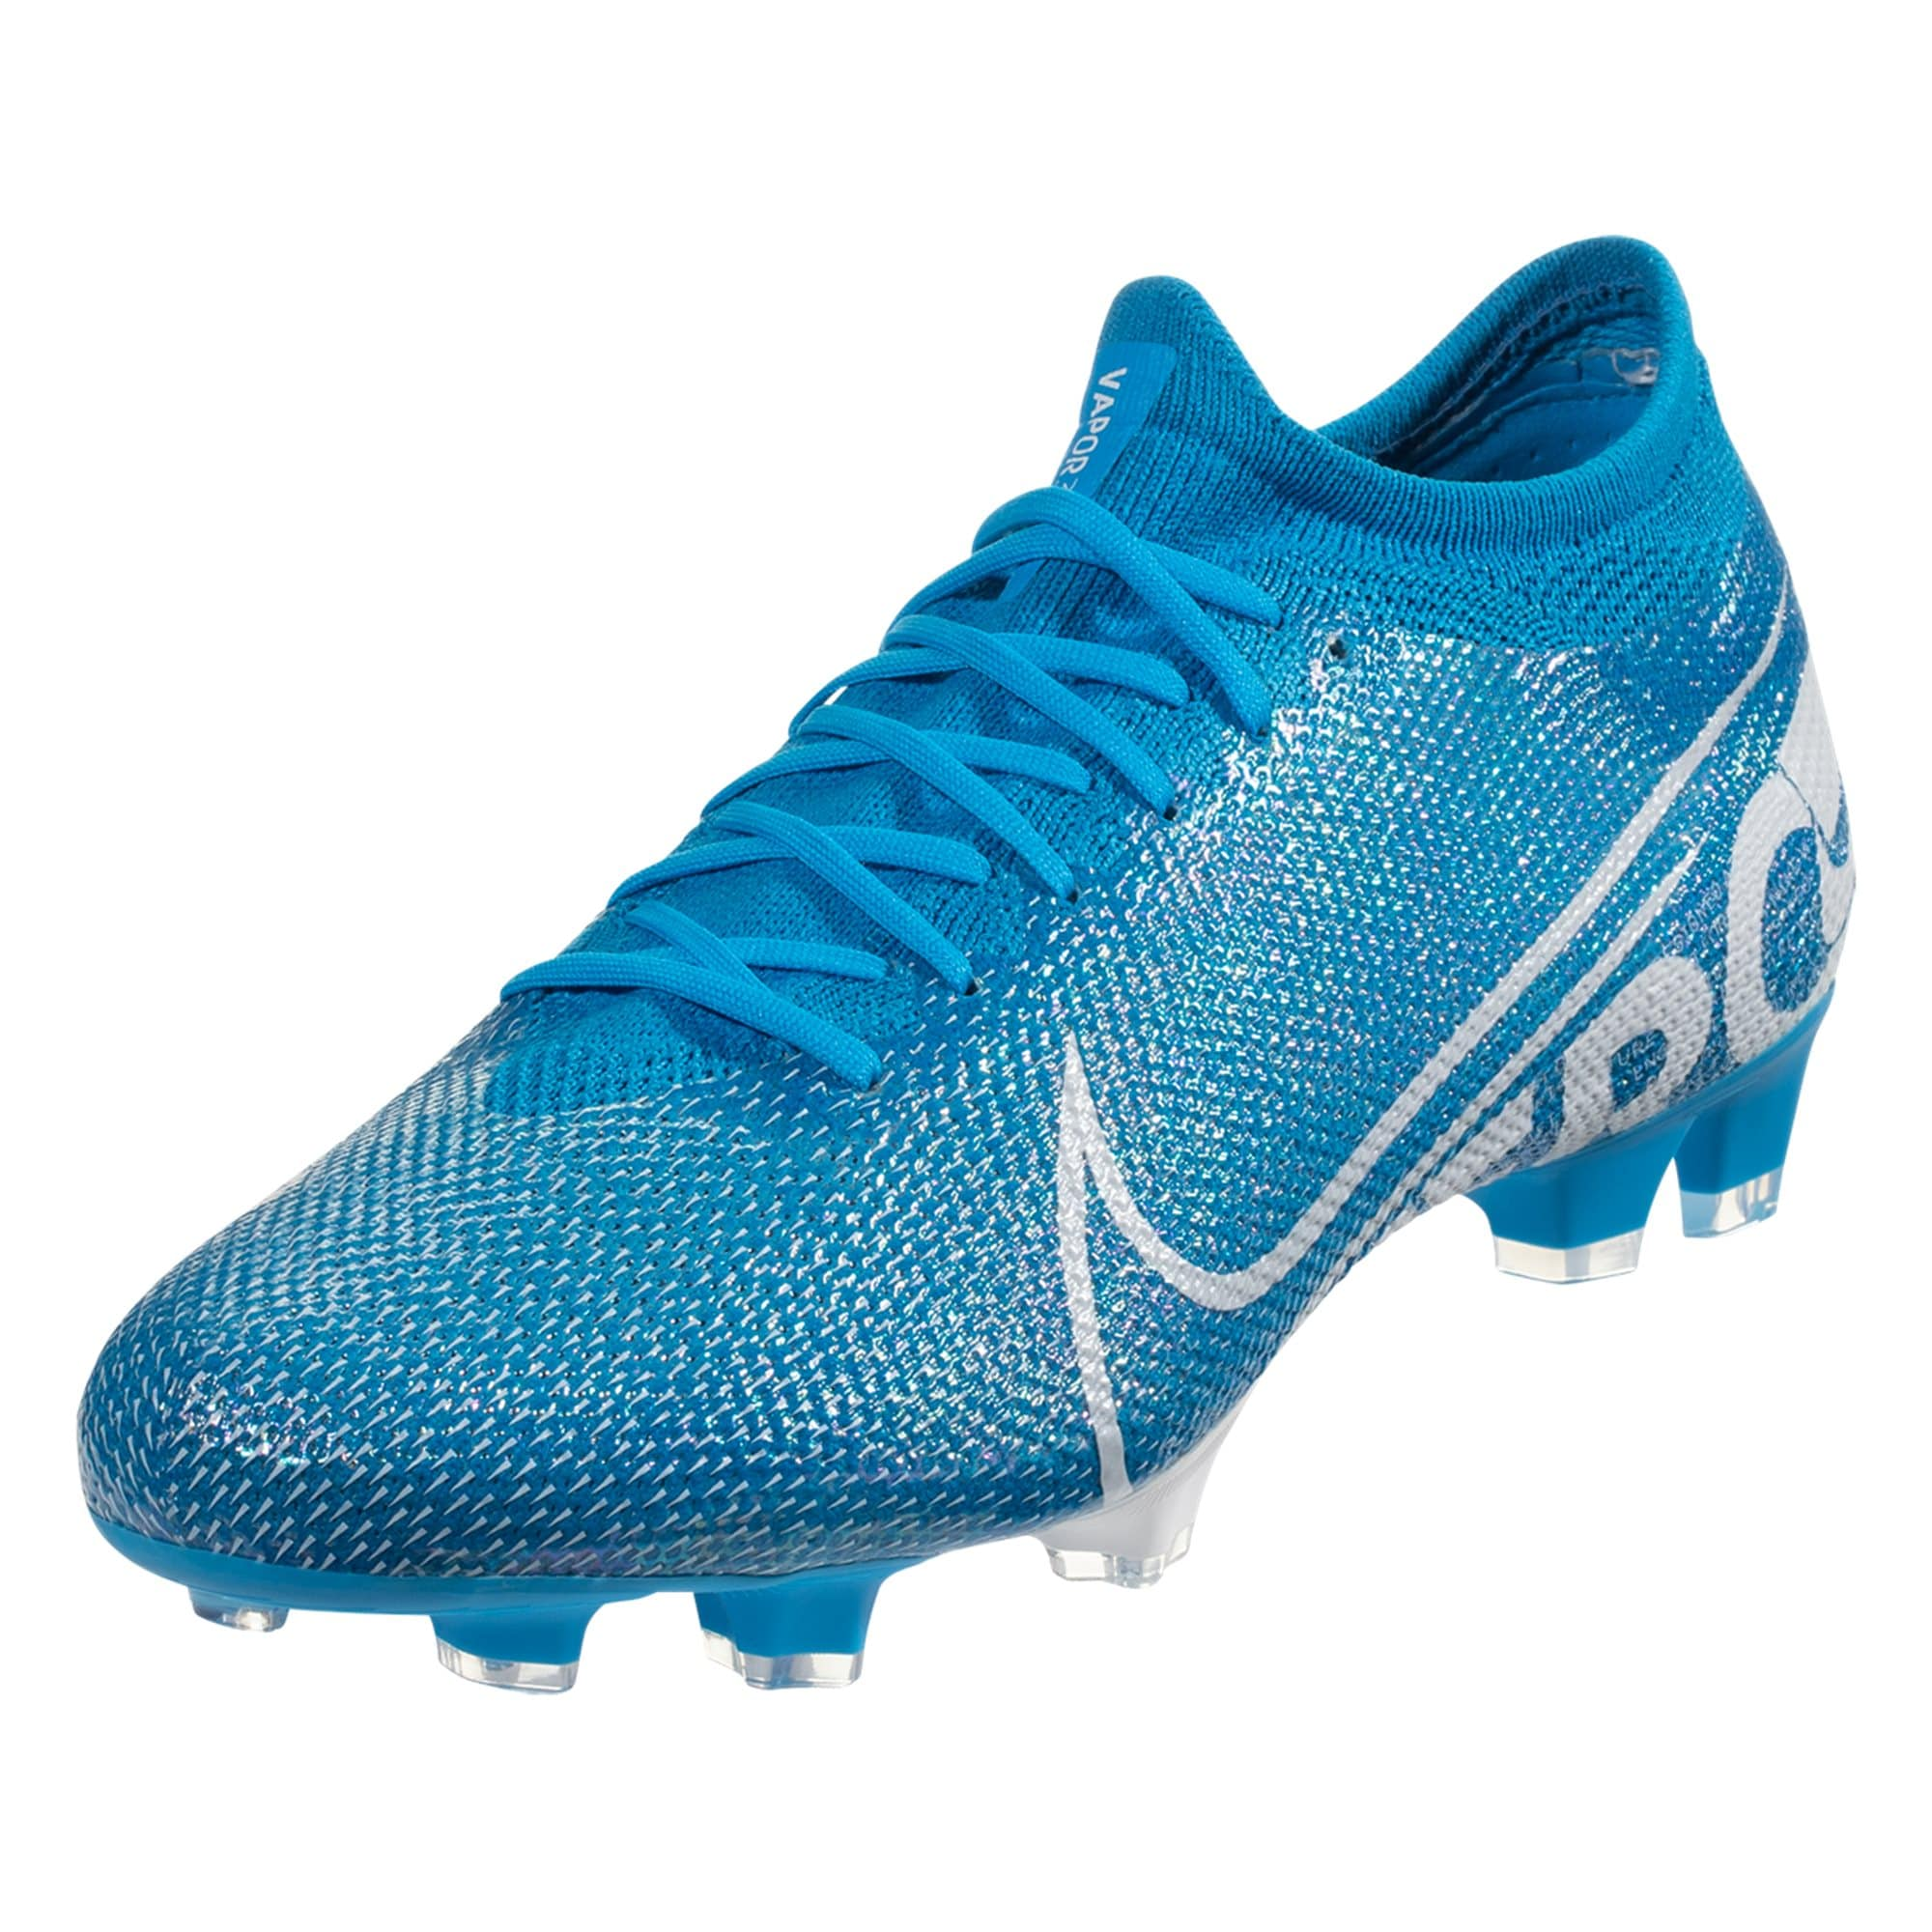 Nike Mercurial Vapor 13 Pro FG Soccer Cleat - Blue Hero / White /Obsidian